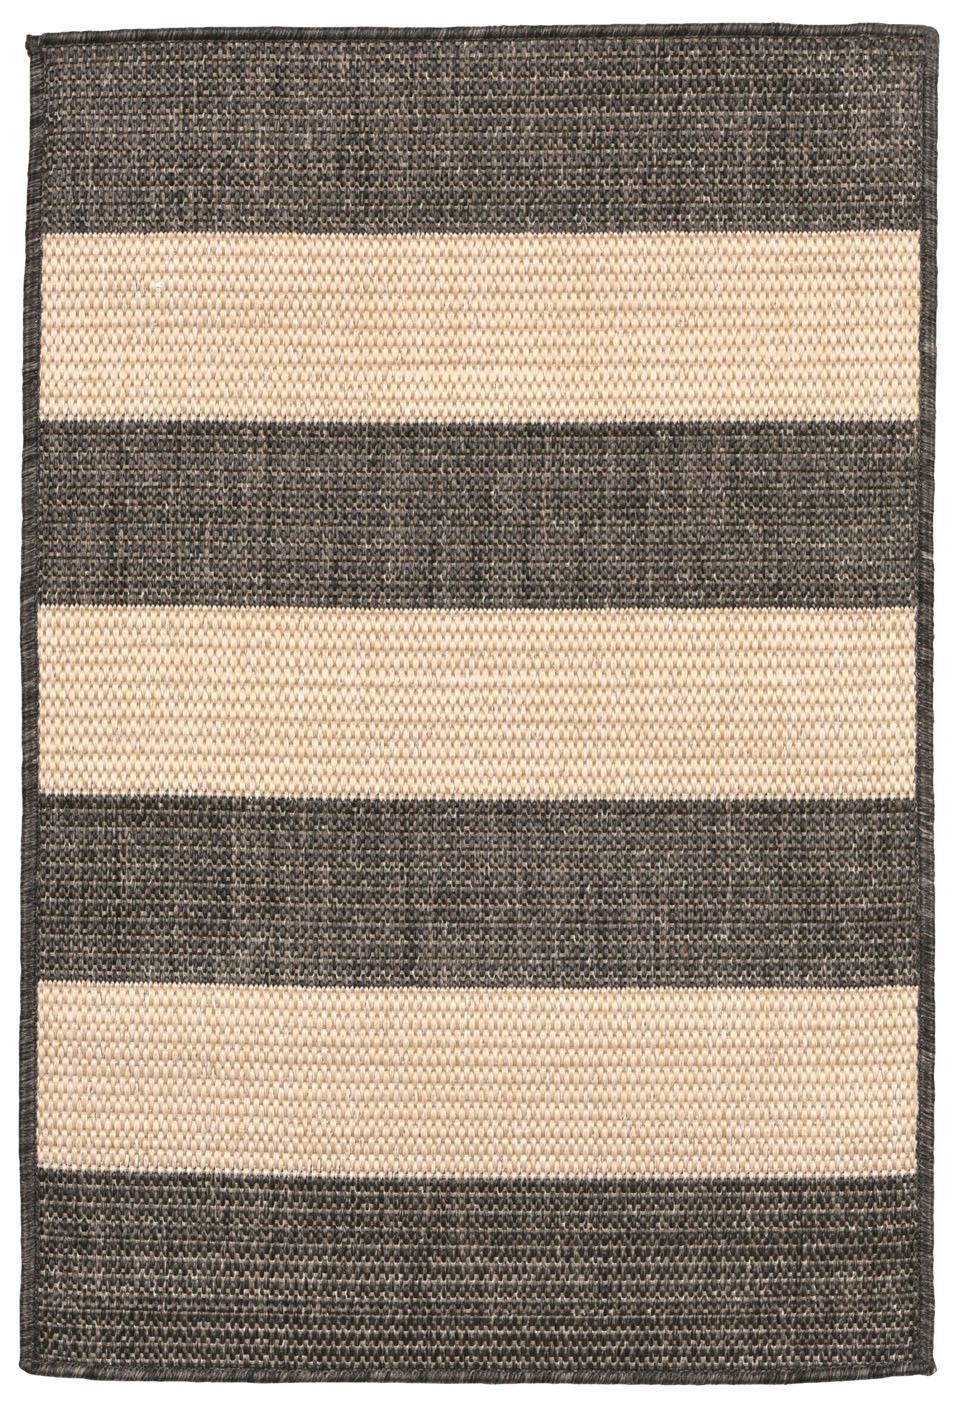 Trans-Ocean Imports TER23178977 Terrace Collection Grey Finish Everywear Rug